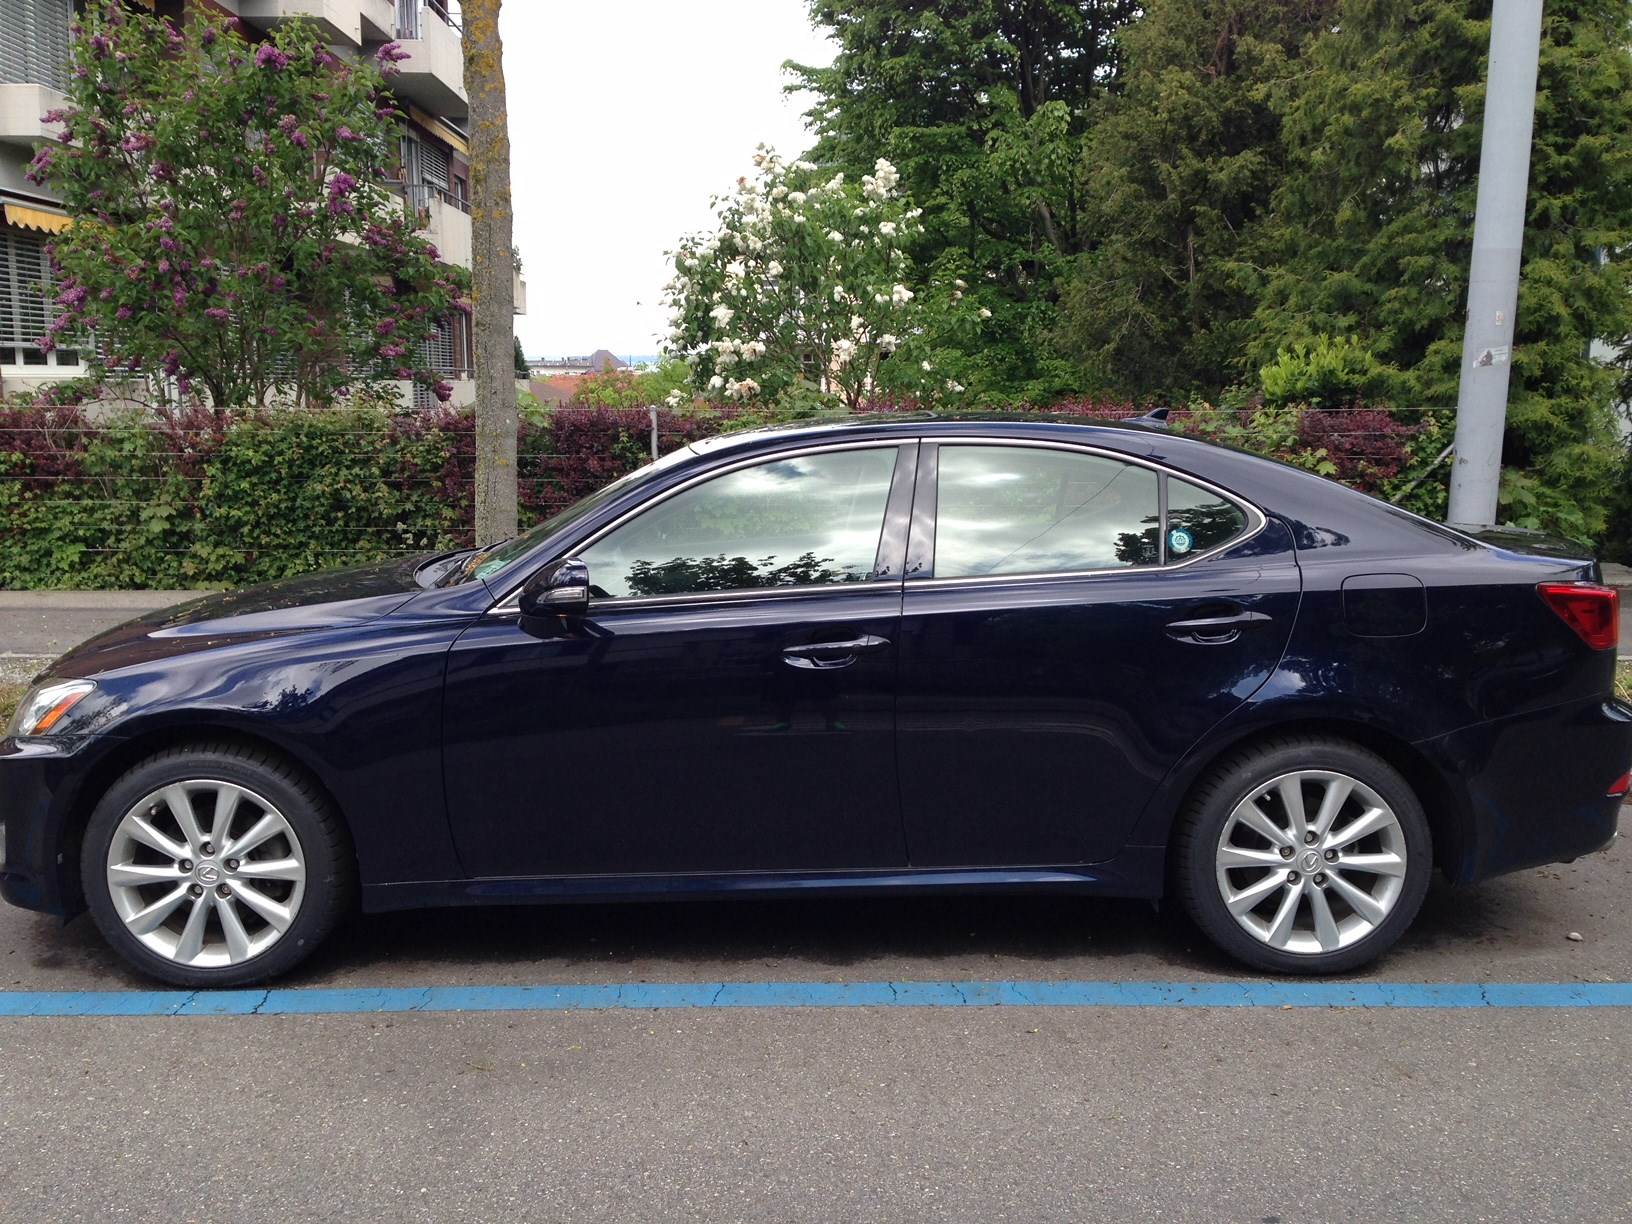 For Sale 2010 Lexus IS 250 AWD Less Than 40K Miles Great